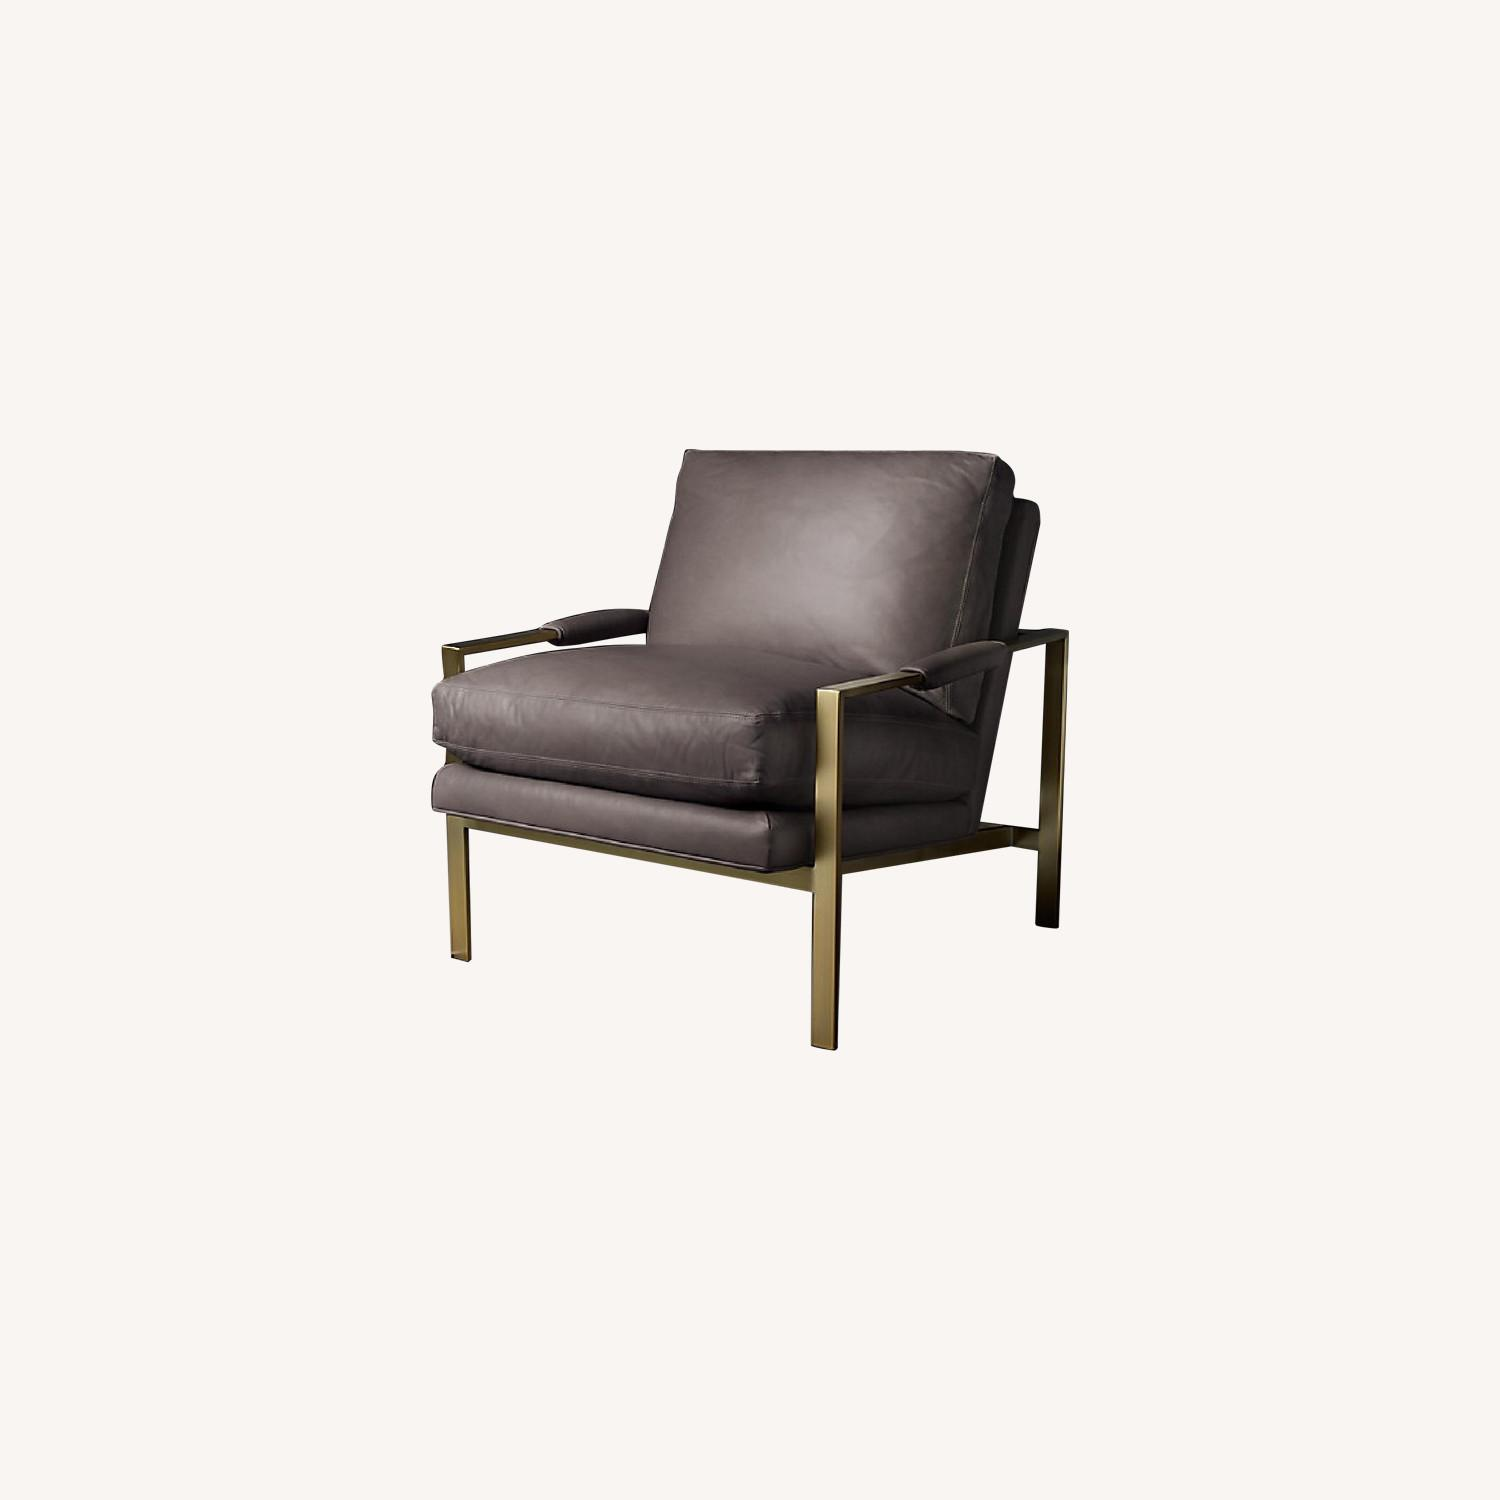 Restoration Hardware Satin Brass Armchair (Set of 2) - image-0